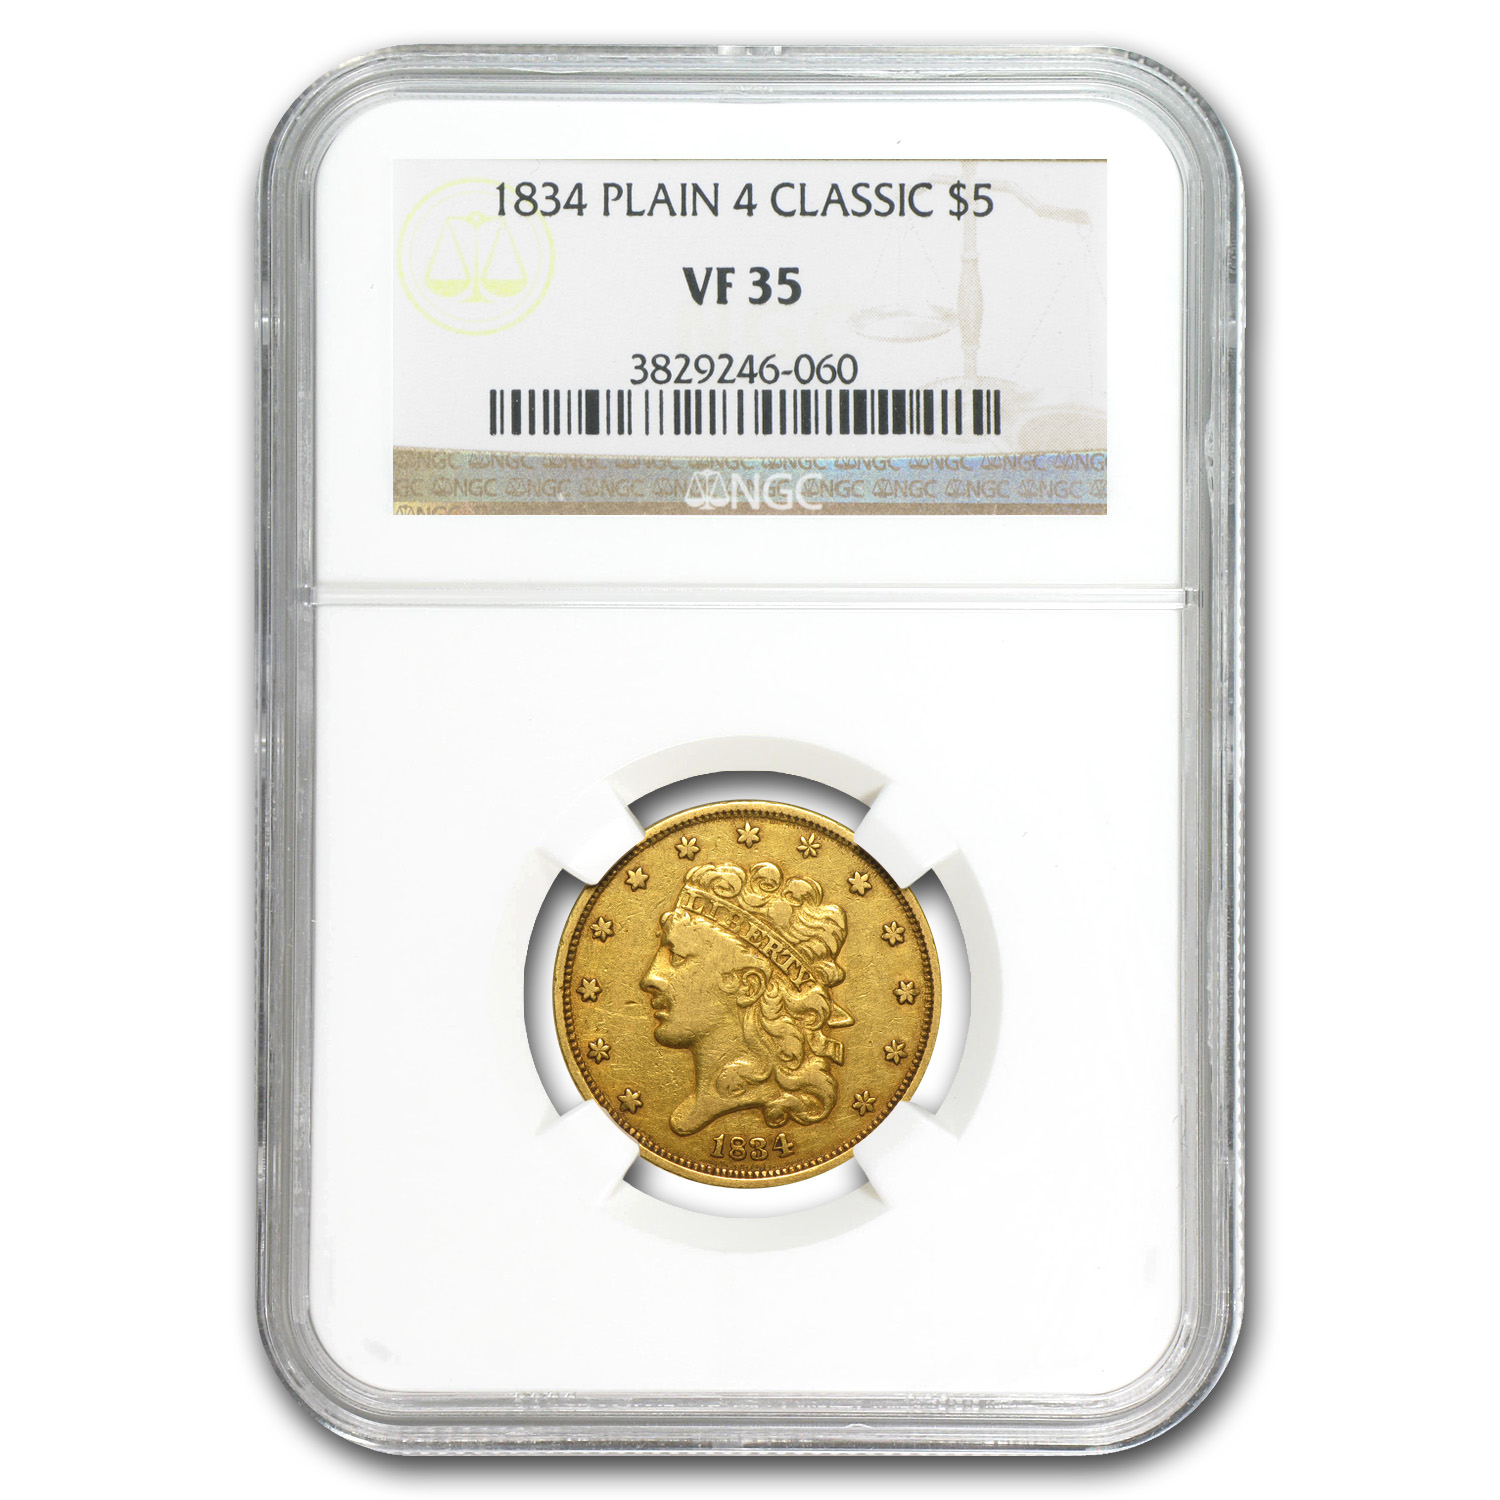 1834 $5 Gold Classic Head Half Eagle - Plain 4 - VF-35 NGC